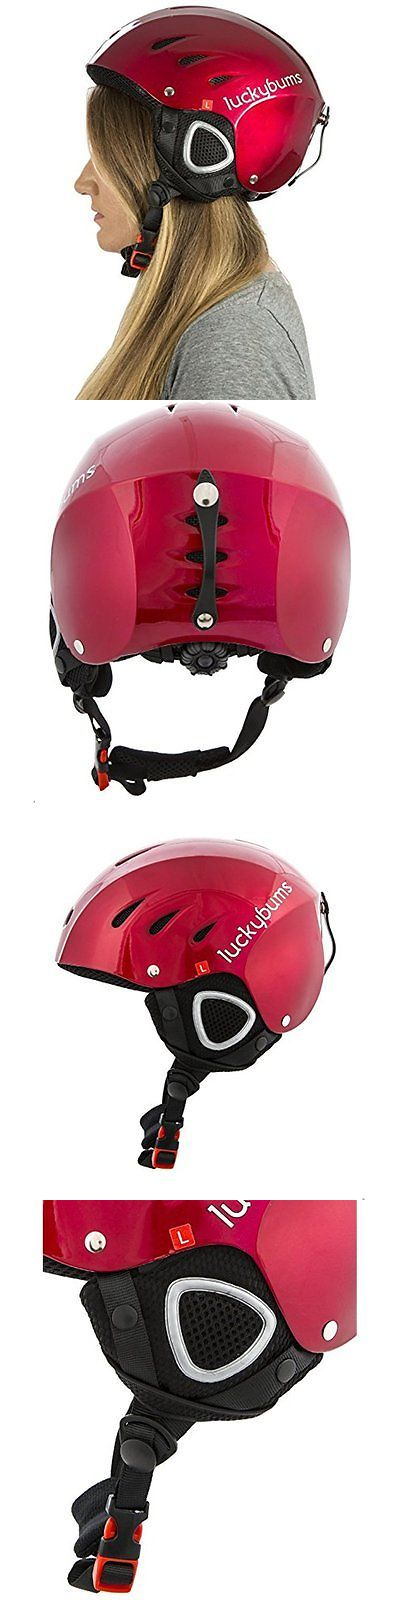 Other Winter Sports 1303: Large Helmets Lucky Bums Snow Sport Helmet, Red, -> BUY IT NOW ONLY: $39.5 on eBay!